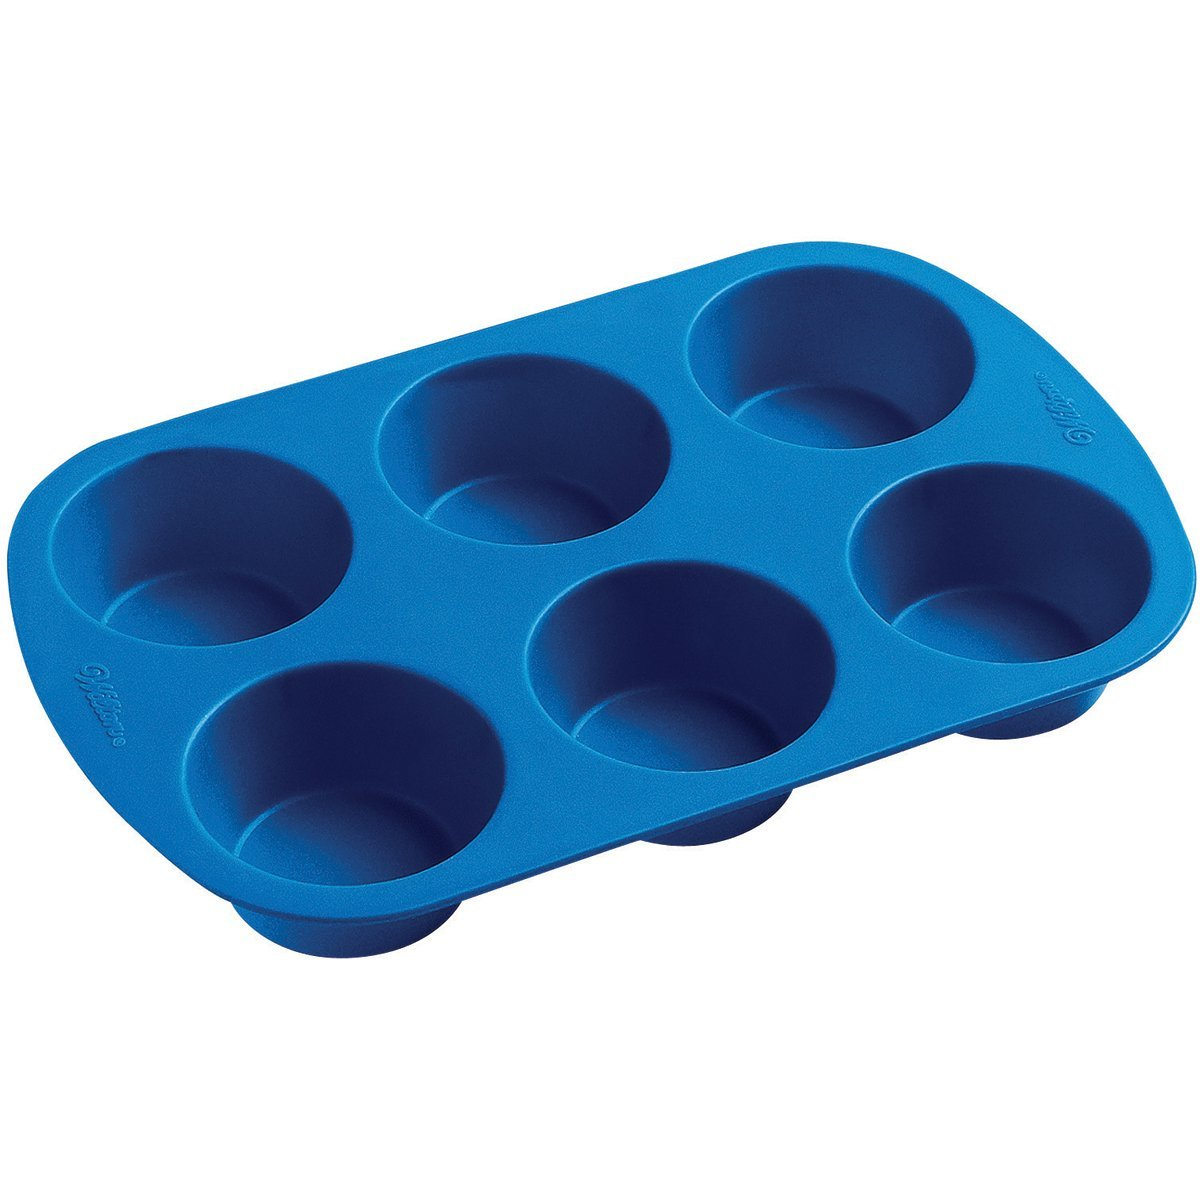 2105 4802 Wilton Silicone Bakeware 6 Cup Muffin Pan